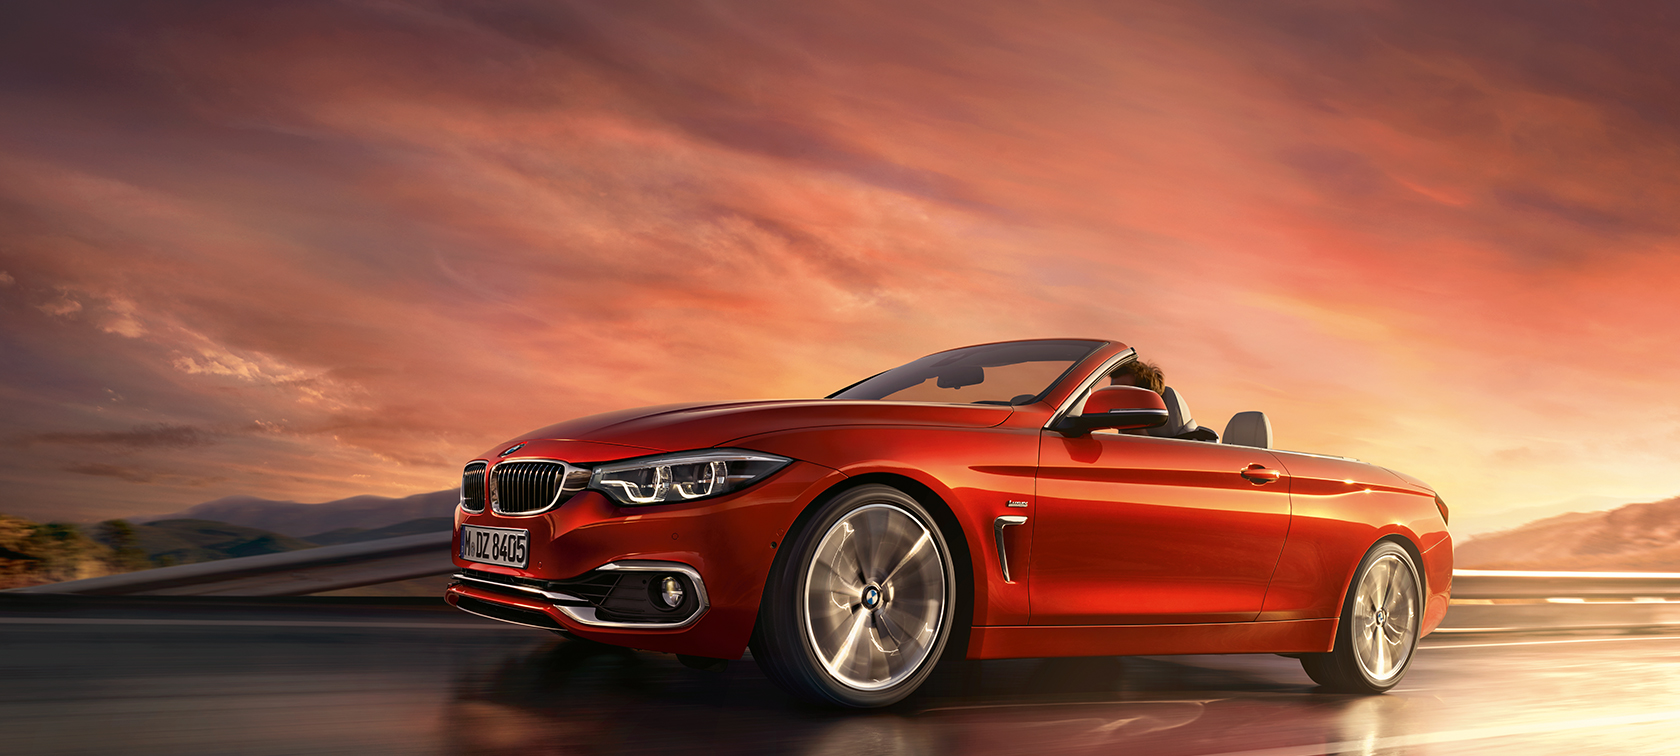 Toma en movimiento del BMW Serie 4 Convertible